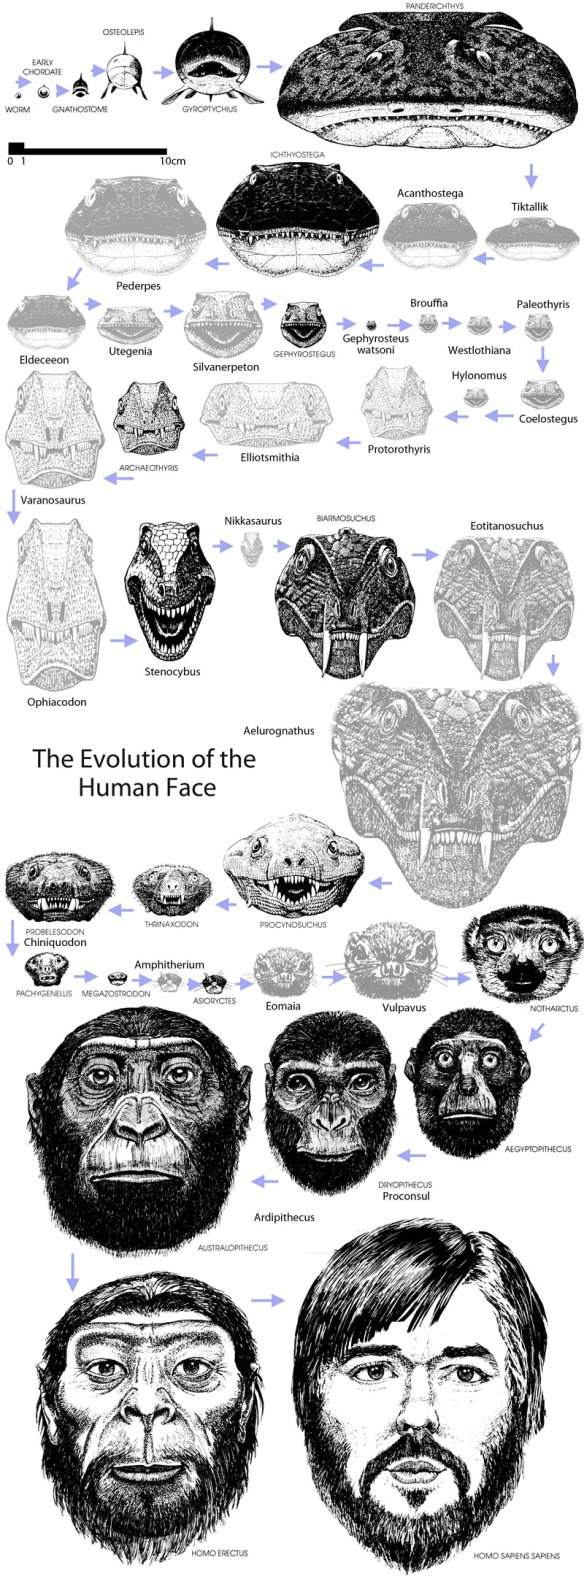 Figure 1. Click to enlarge. The evolution of the human face. Many images come from Peters 1991, From the Beginning.